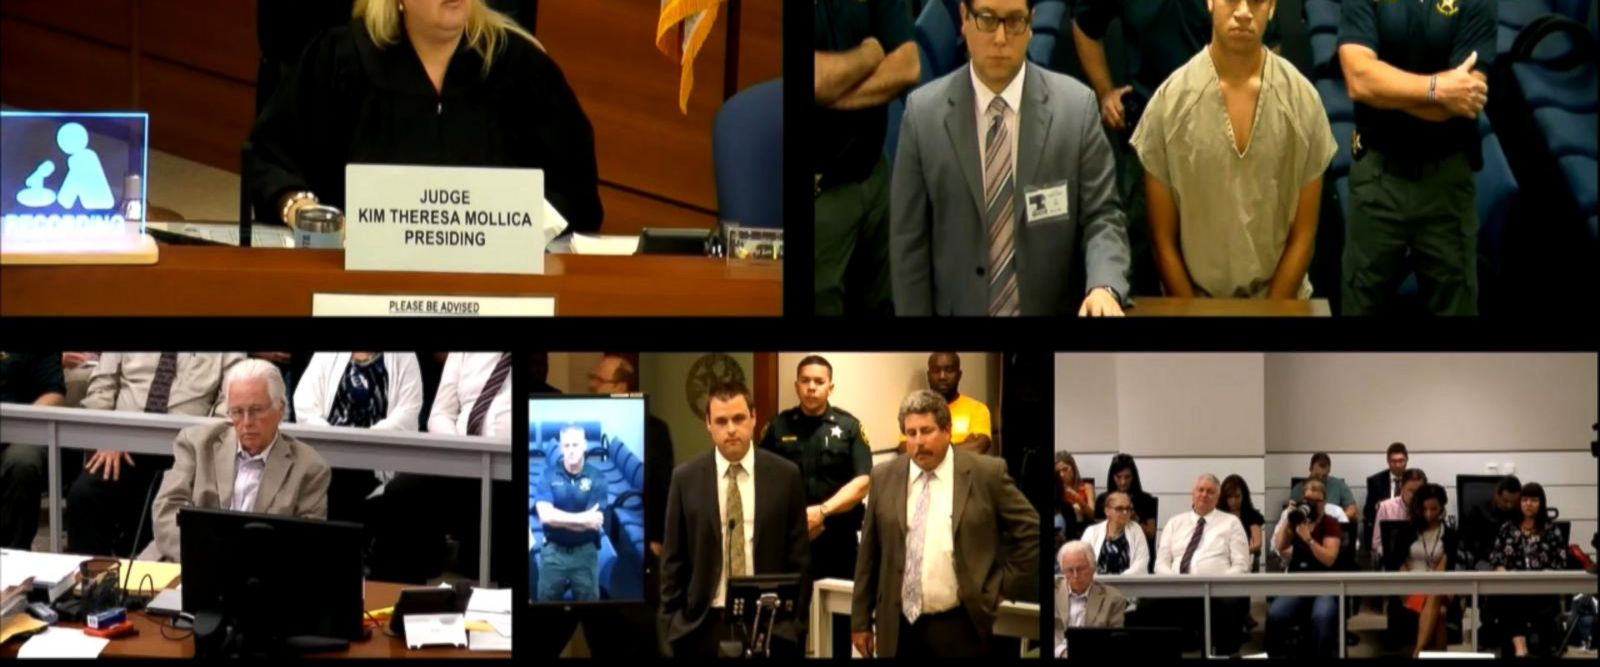 VIDEO: One of the judge's restrictions on Zachary Cruz is that he not have any contact with his brother, Nikolas Cruz.